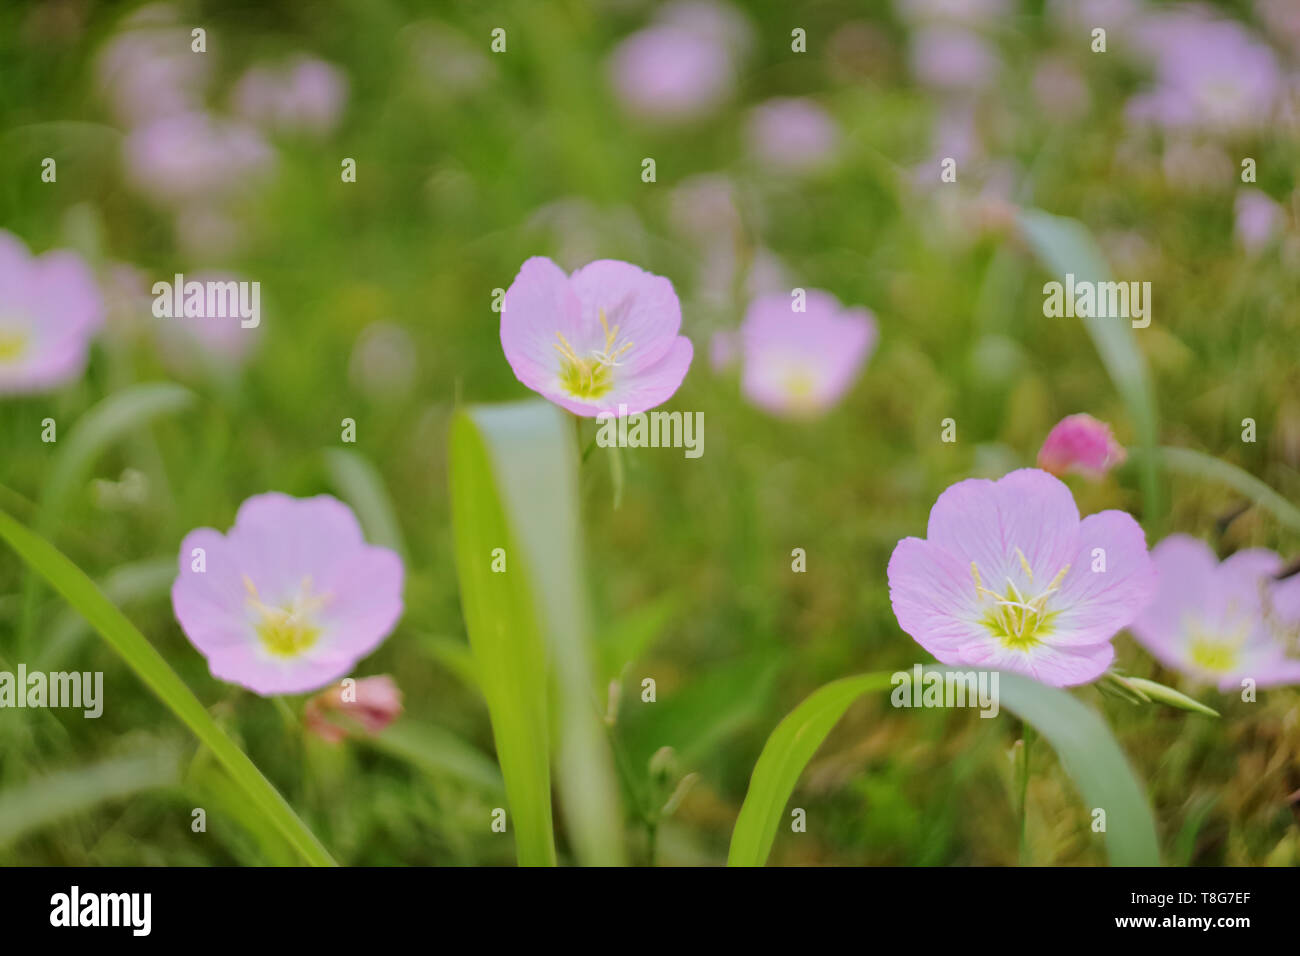 Close up picture of 3 Pink Evening Primrose flowers taken at